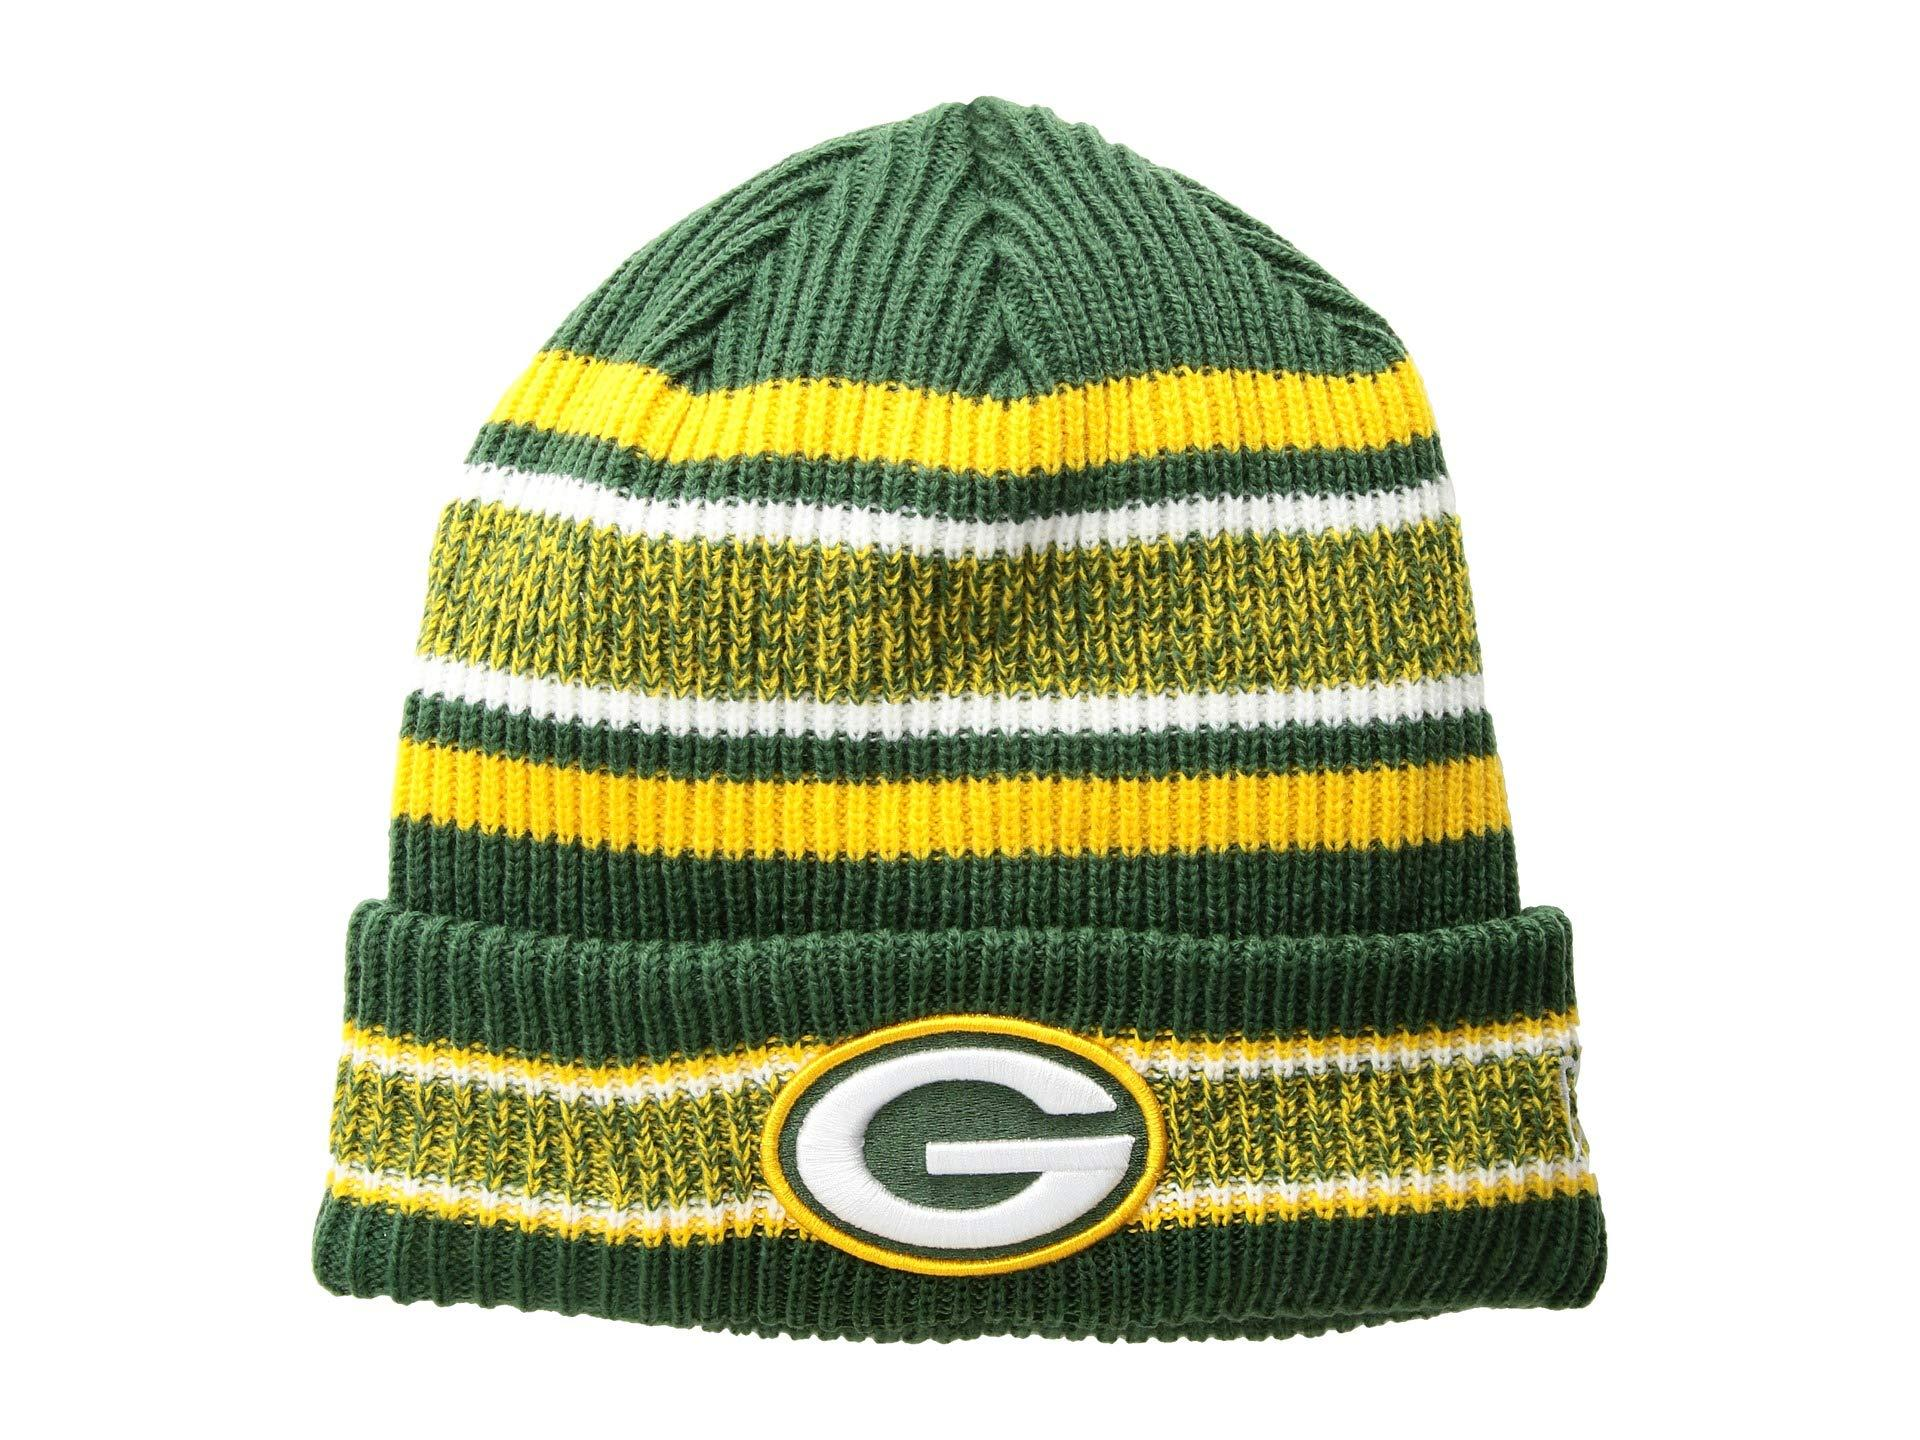 Lyst - Ktz Green Bay Packers Vintage Stripe in Green for Men - Save ... 6286368d5